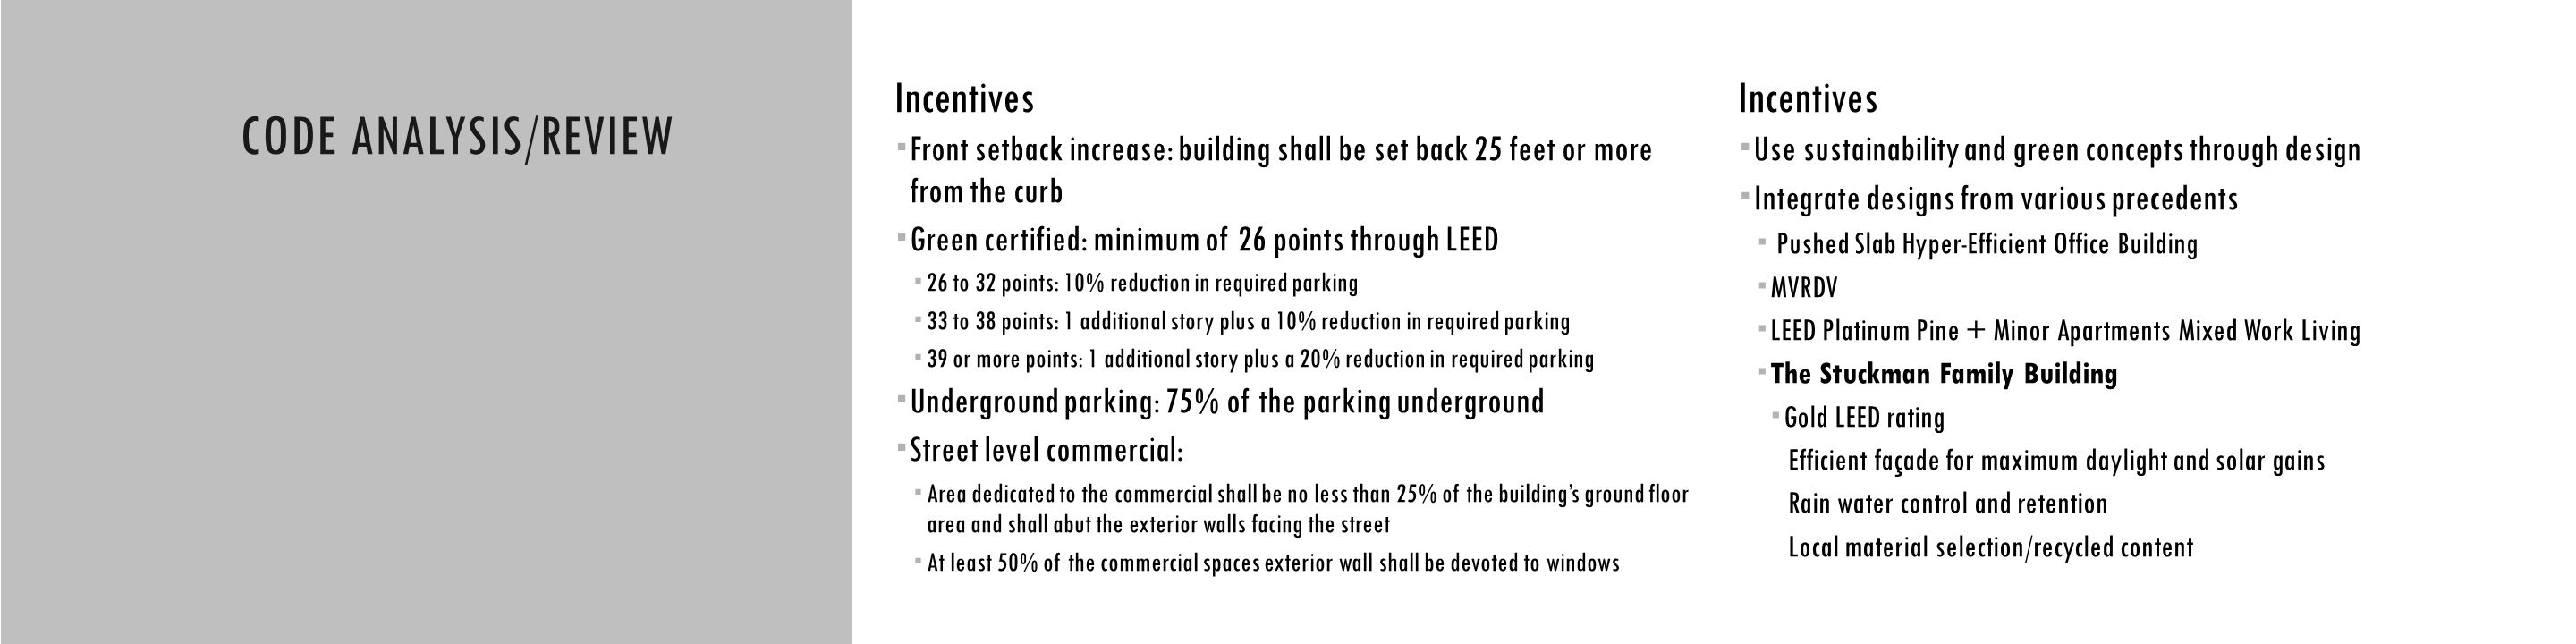 CODE ANALYSIS CODE ANALYSIS/REVIEW Incentives  Front setback increase: building shall be set back 25 feet or more from the curb  Green certified: minimum of 26 points through LEED  26 to 32 points: 10% reduction in required parking  33 to 38 points: 1 additional story plus a 10% reduction in required parking  39 or more points: 1 additional story plus a 20% reduction in required parking  Underground parking: 75% of the parking underground  Street level commercial:  Area dedicated to the commercial shall be no less than 25% of the building's ground floor area and shall abut the exterior walls facing the street  At least 50% of the commercial spaces exterior wall shall be devoted to windows Incentives  Use sustainability and green concepts through design  Integrate designs from various precedents  Pushed Slab Hyper-Efficient Office Building  MVRDV  LEED Platinum Pine + Minor Apartments Mixed Work Living  The Stuckman Family Building  Gold LEED rating Efficient façade for maximum daylight and solar gains Rain water control and retention Local material selection/recycled content